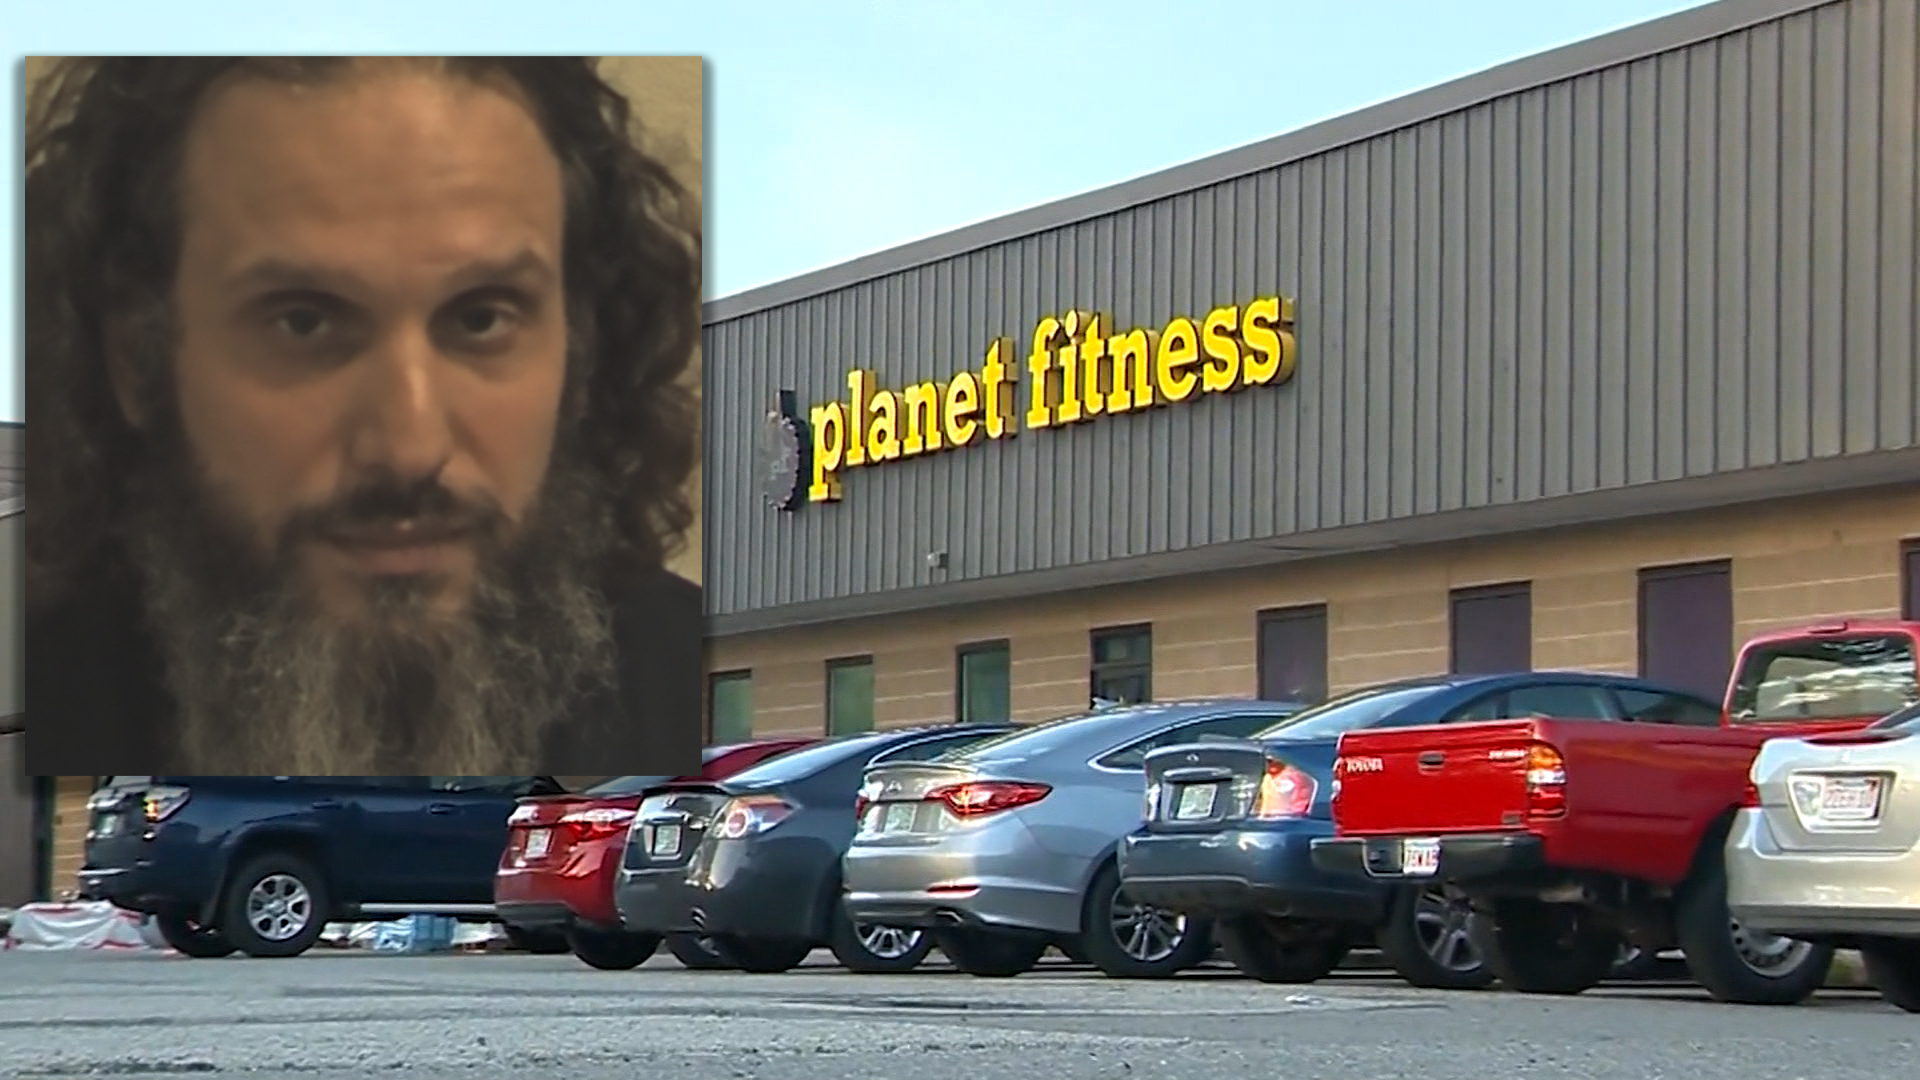 Man arrested for exercising naked at Planet Fitness